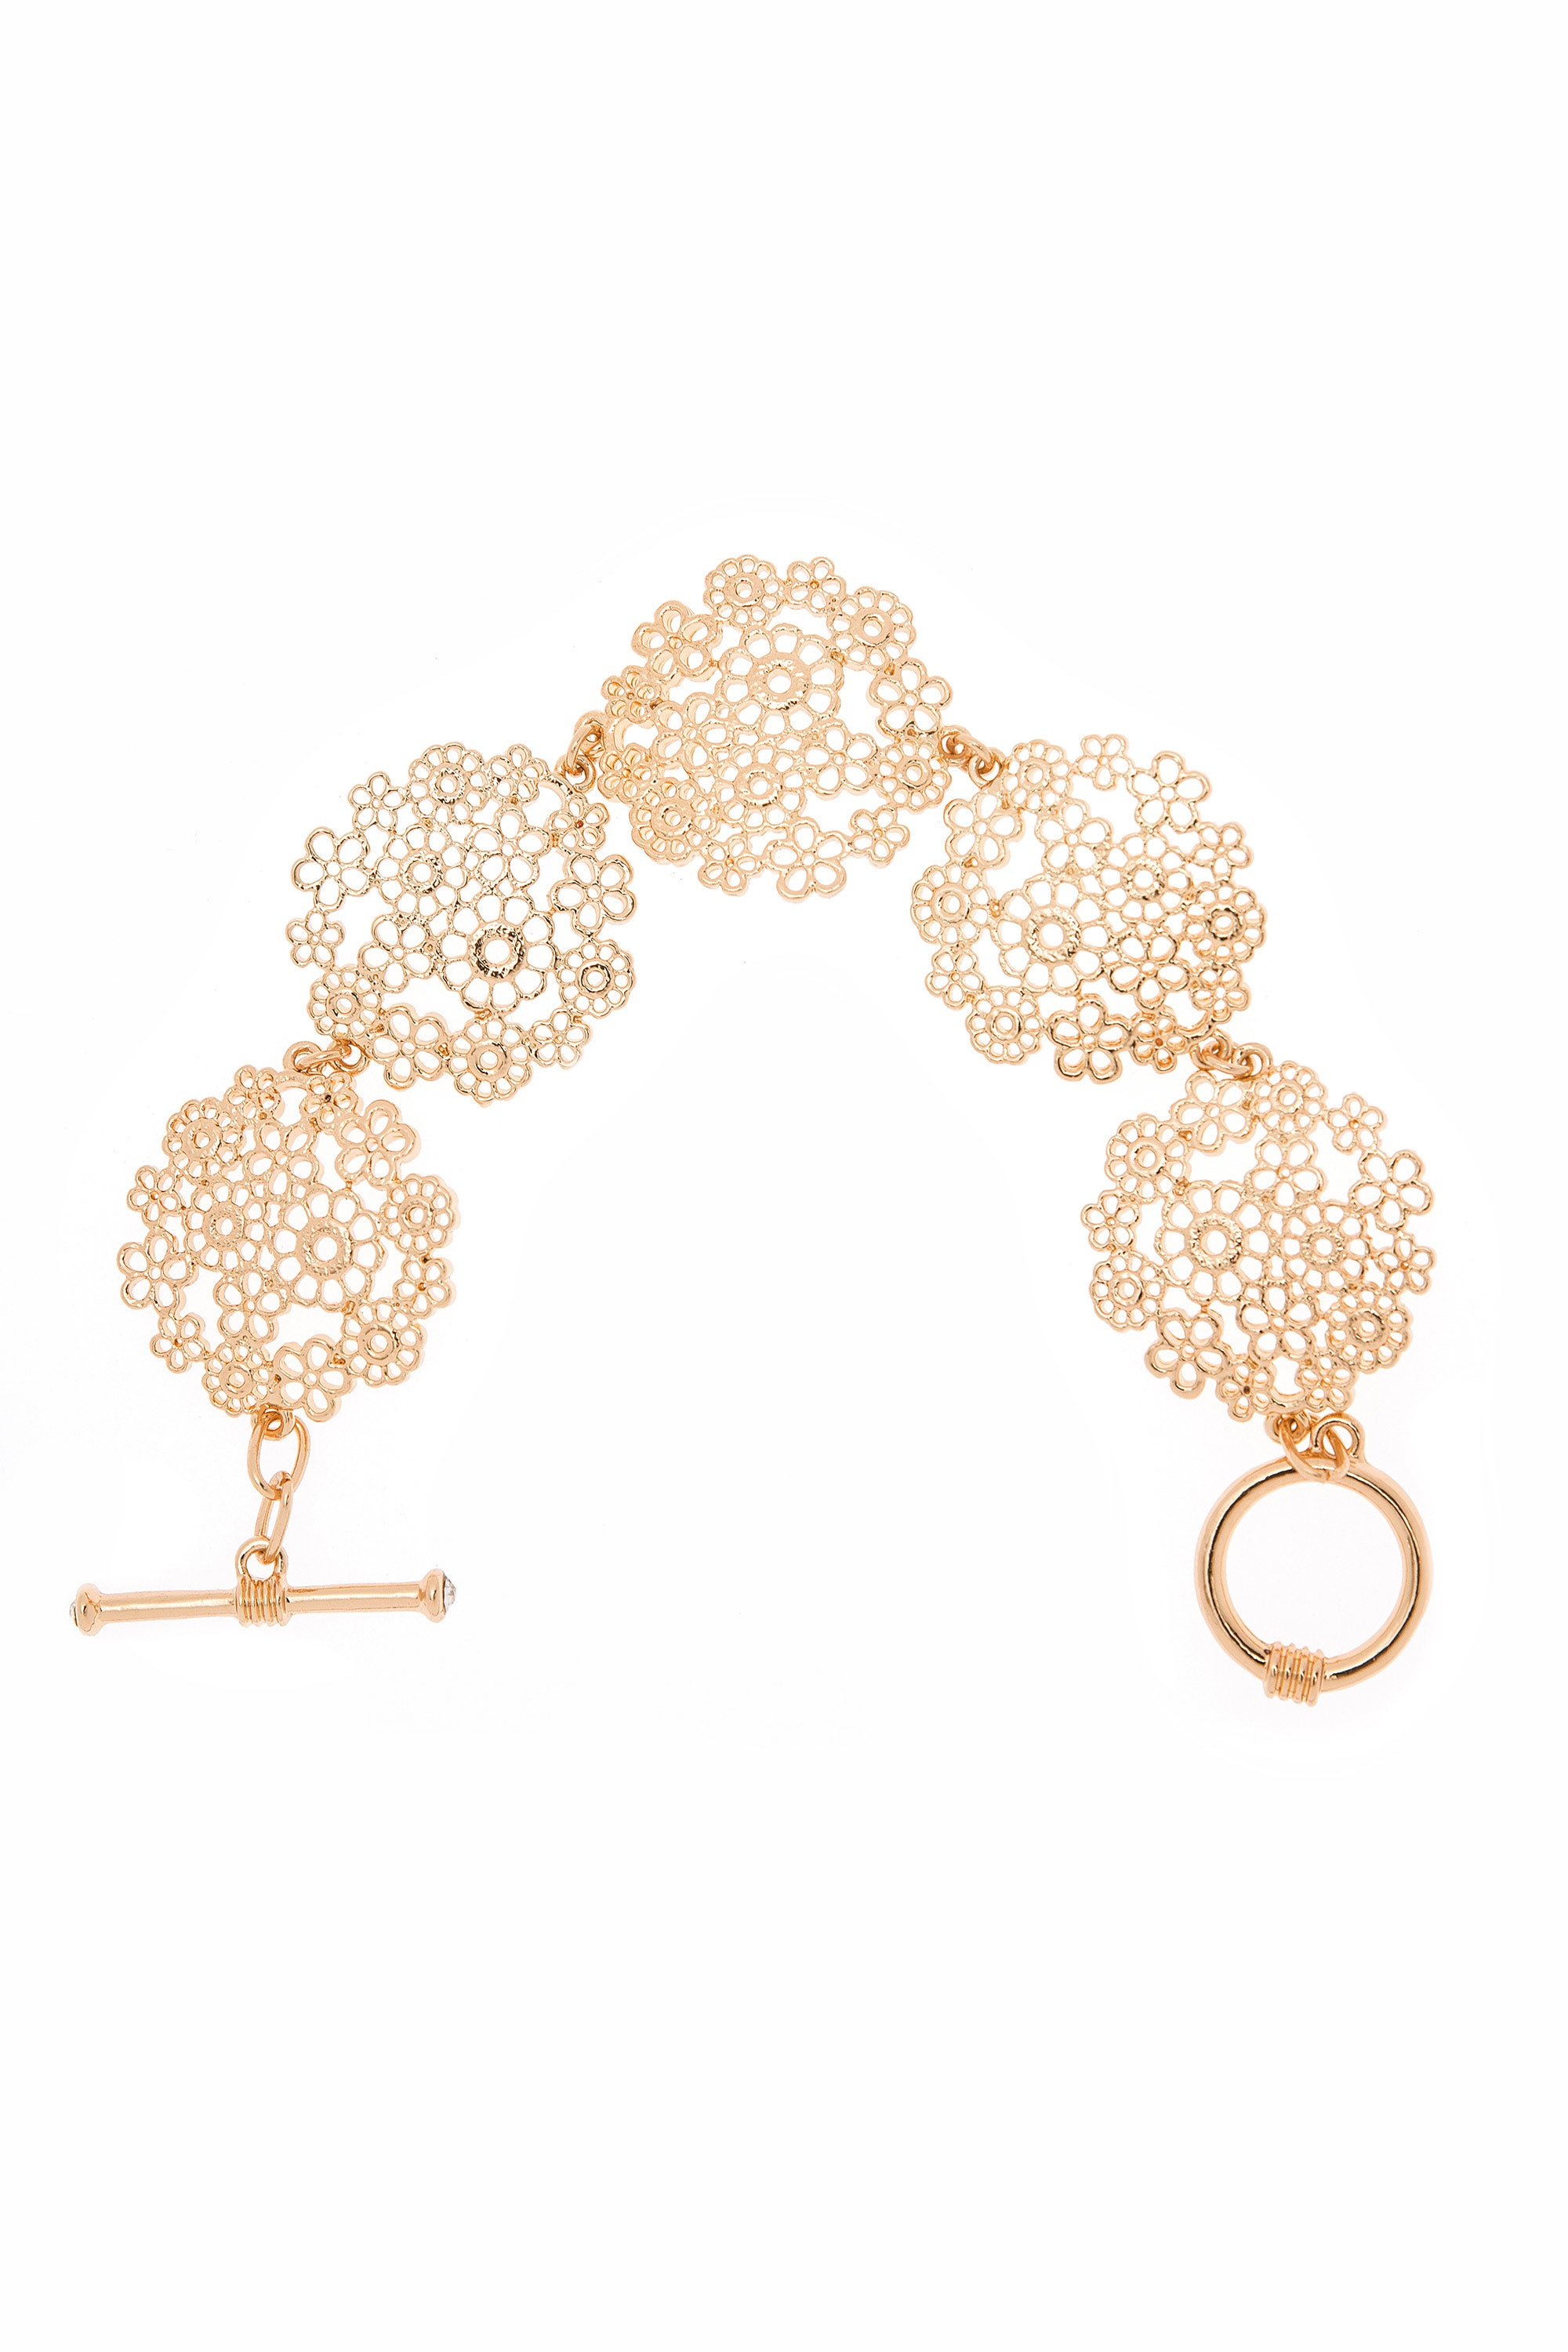 Type 1 Golden Posies Bracelet